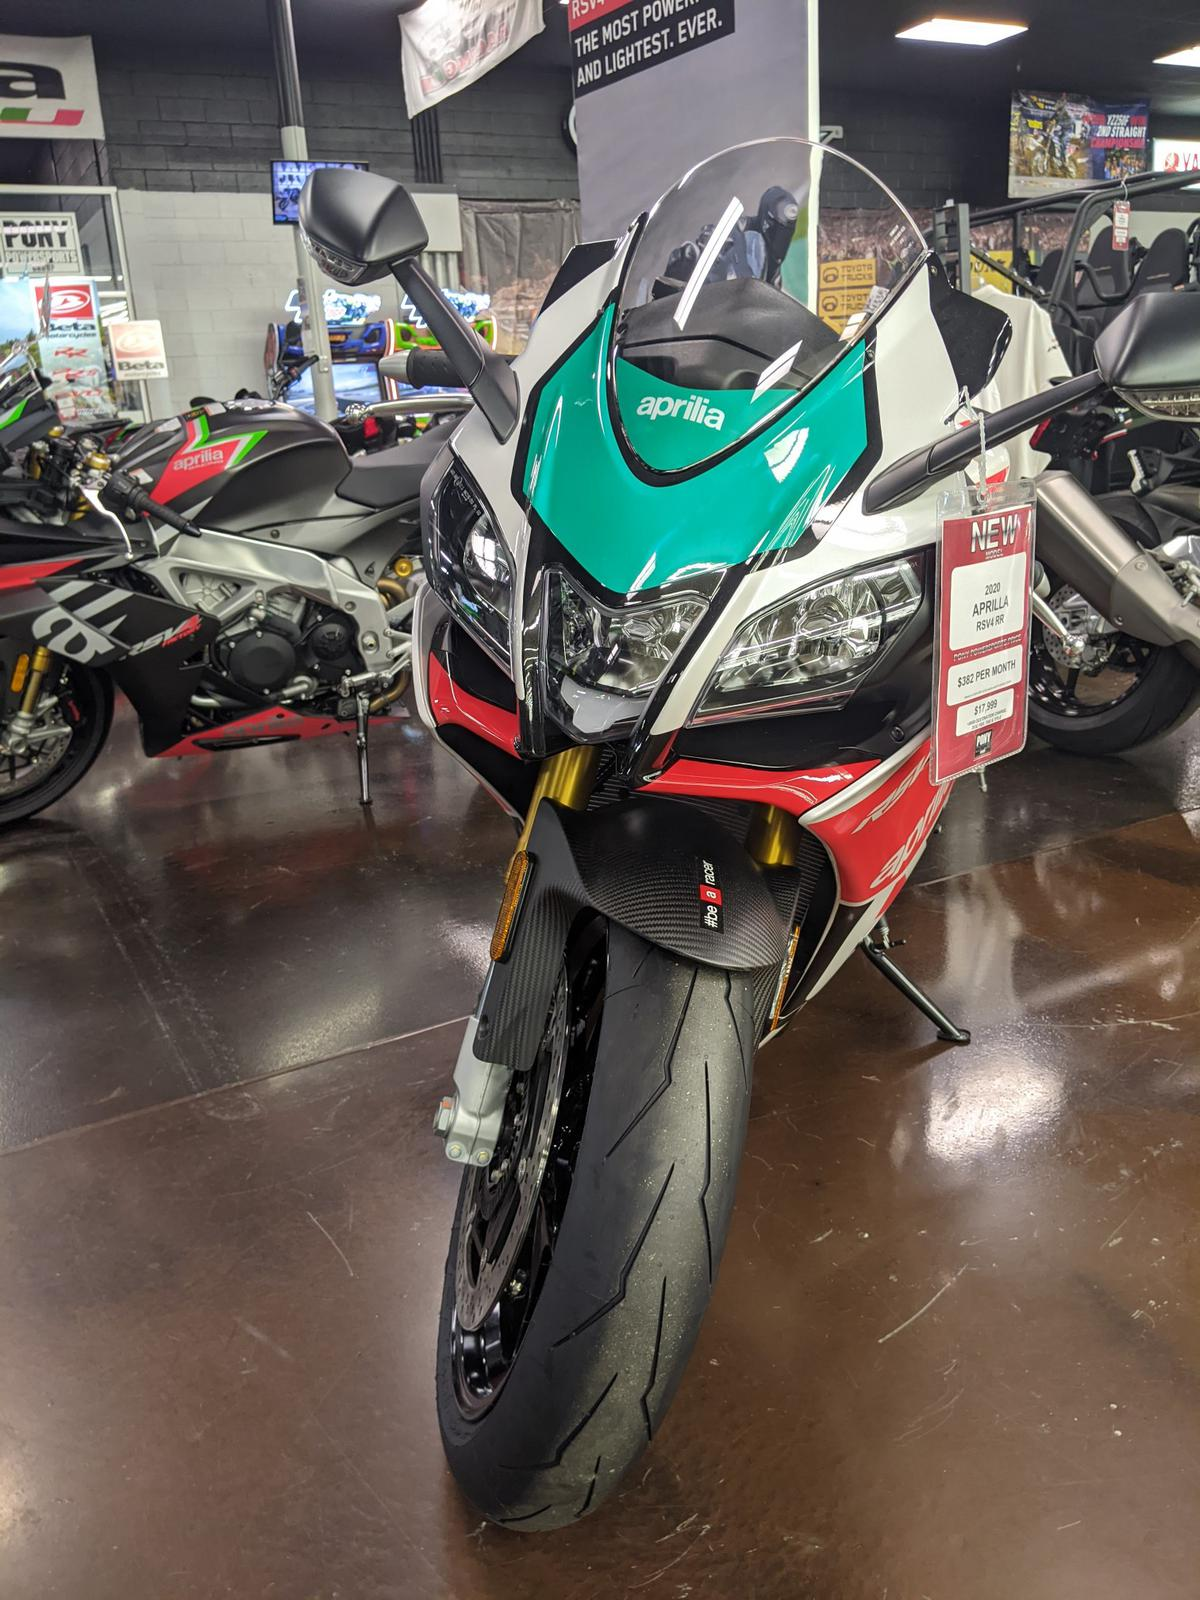 2020 Aprilia Rsv4 Rr Misano Limited Edition For Sale In Westerville Oh Pony Powersports Columbus 614 212 7888